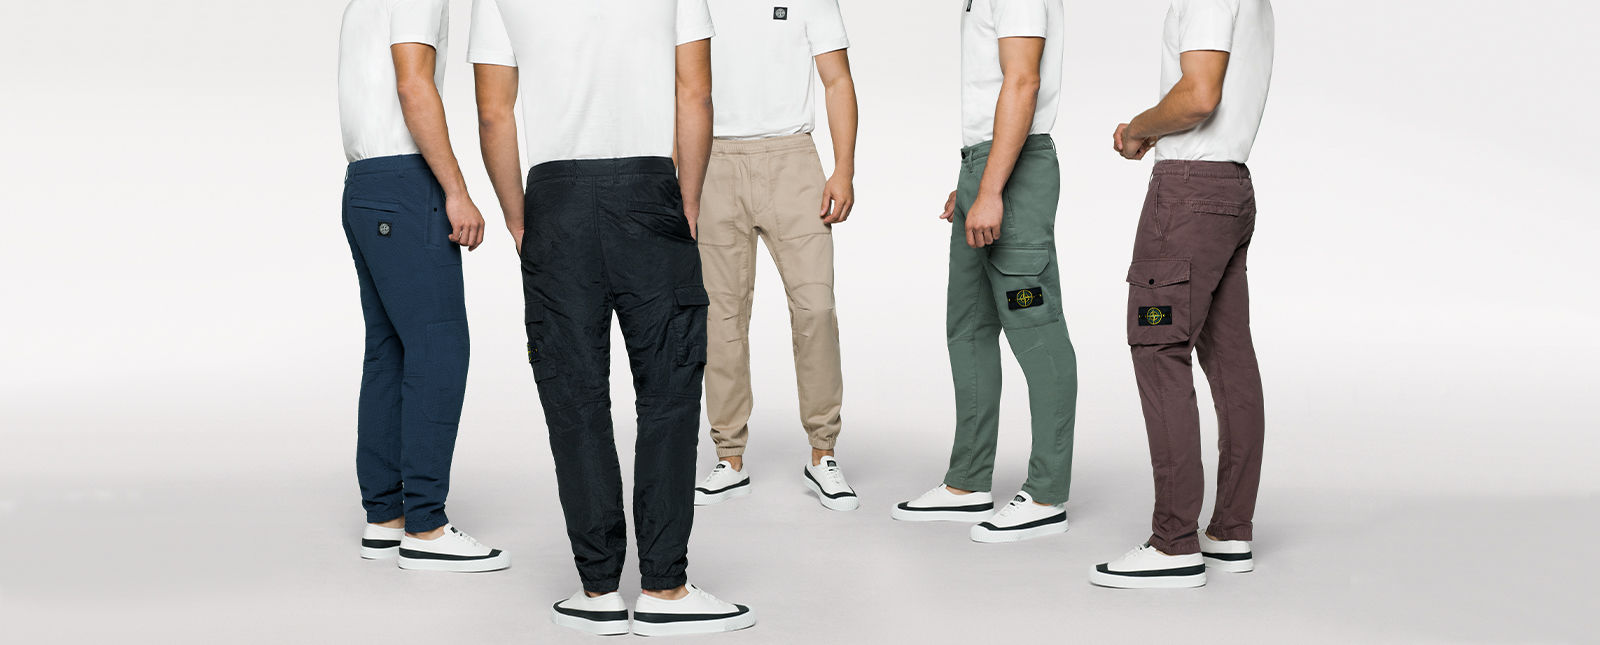 Five models standing in a semi circle and wearing white t shirts and cargo pants with pockets in black, dark blue, tan, green, and maroon.